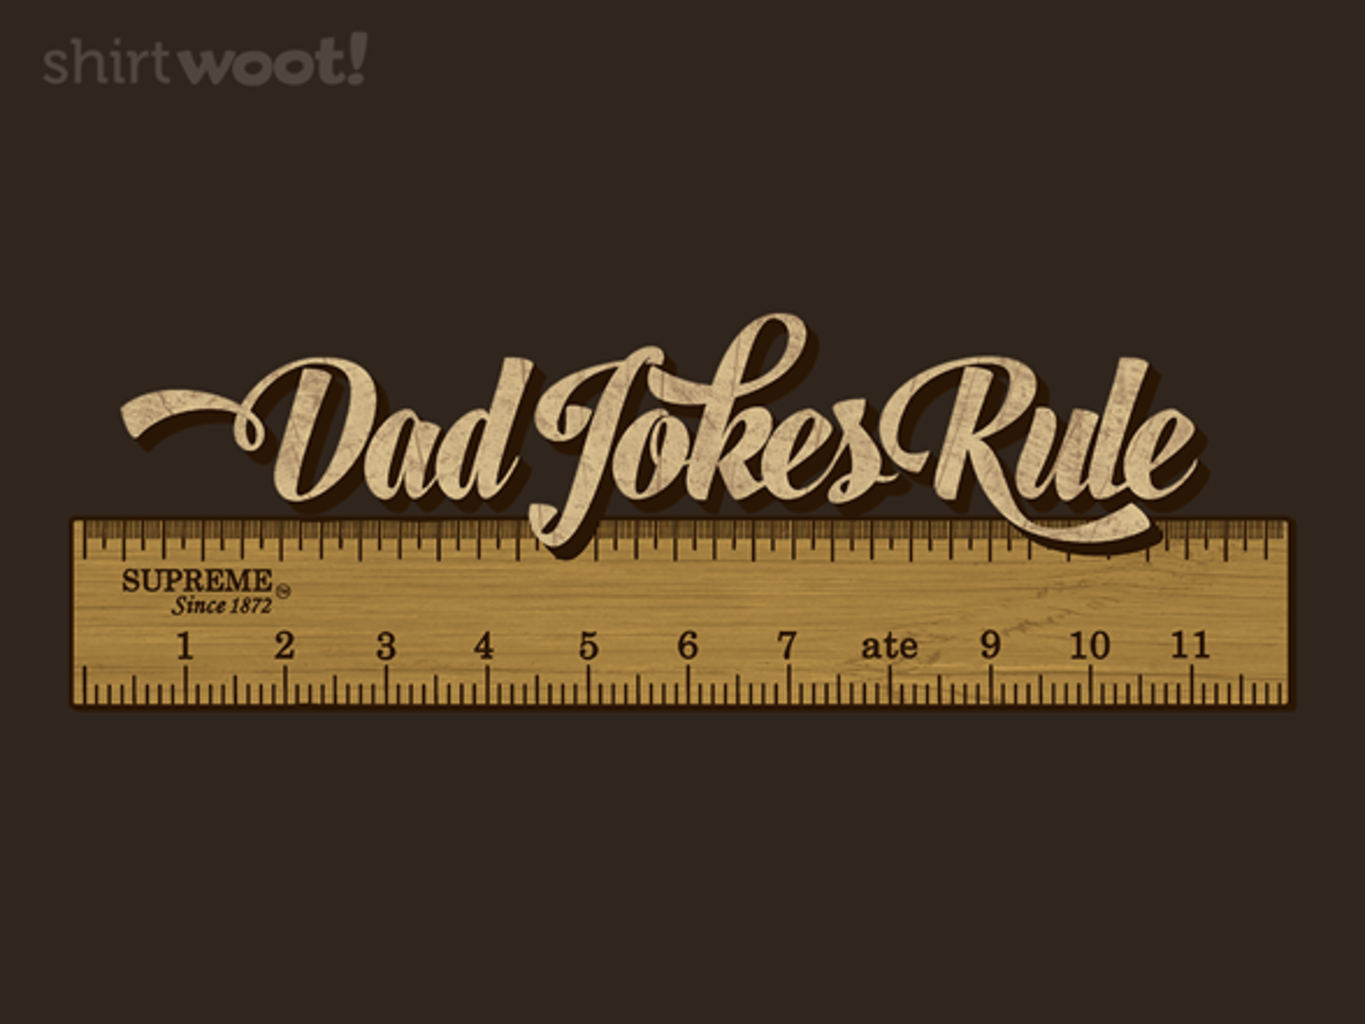 Woot!: Dad Jokes Rule